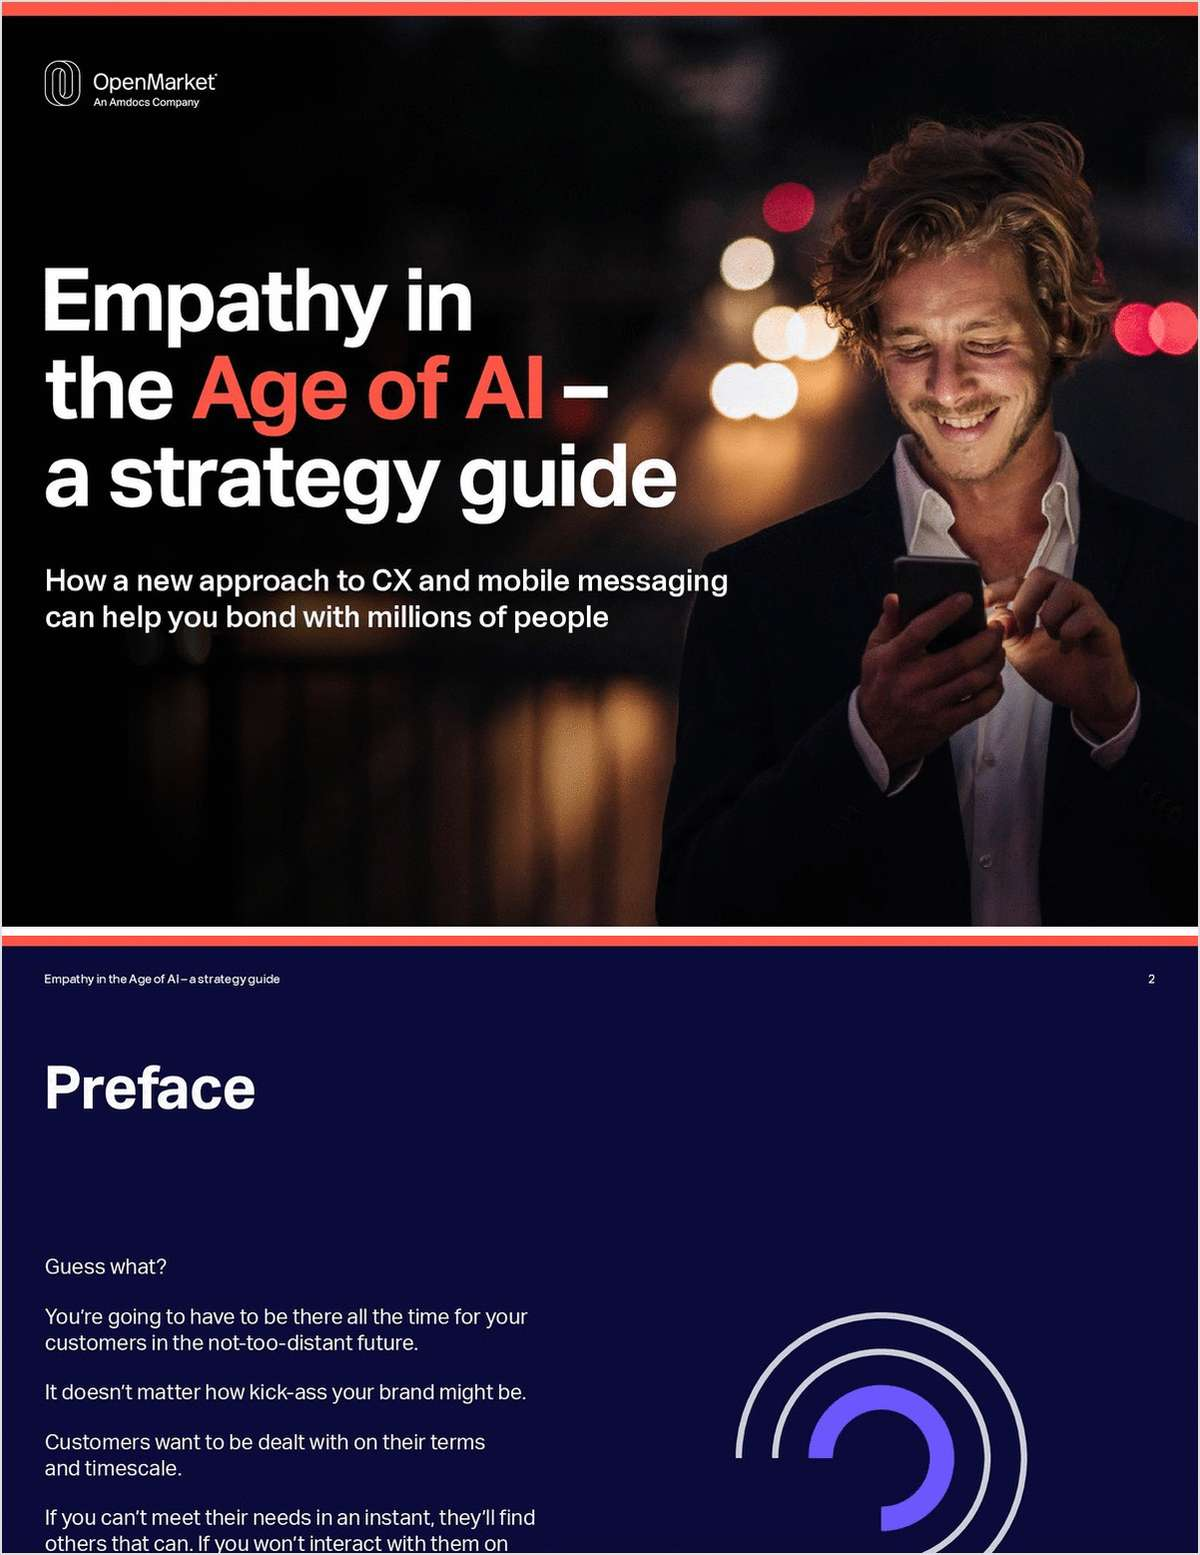 Empathy in the Age of AI - A Strategy Guide. How a New Approach to CX and Mobile Messaging Can Help You Bond with Millions of People